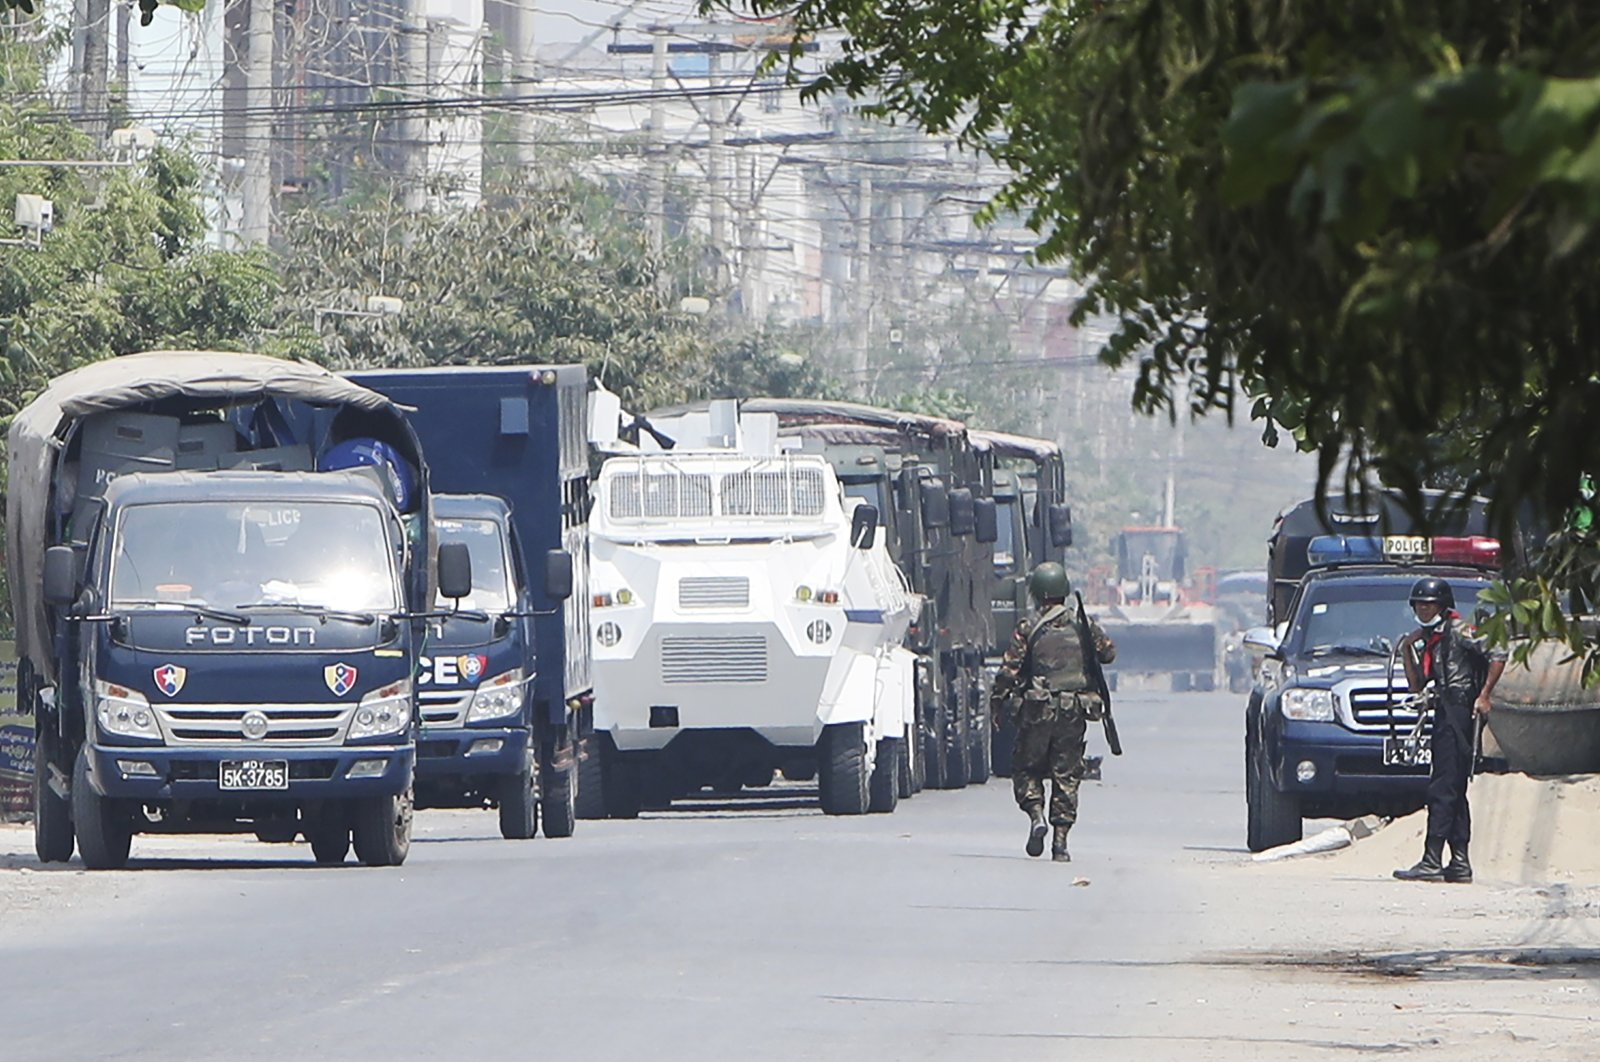 A soldier walks along a row of vehicles of security forces parked on a road in Mandalay, Myanmar, March 19, 2021. (AP Photos)